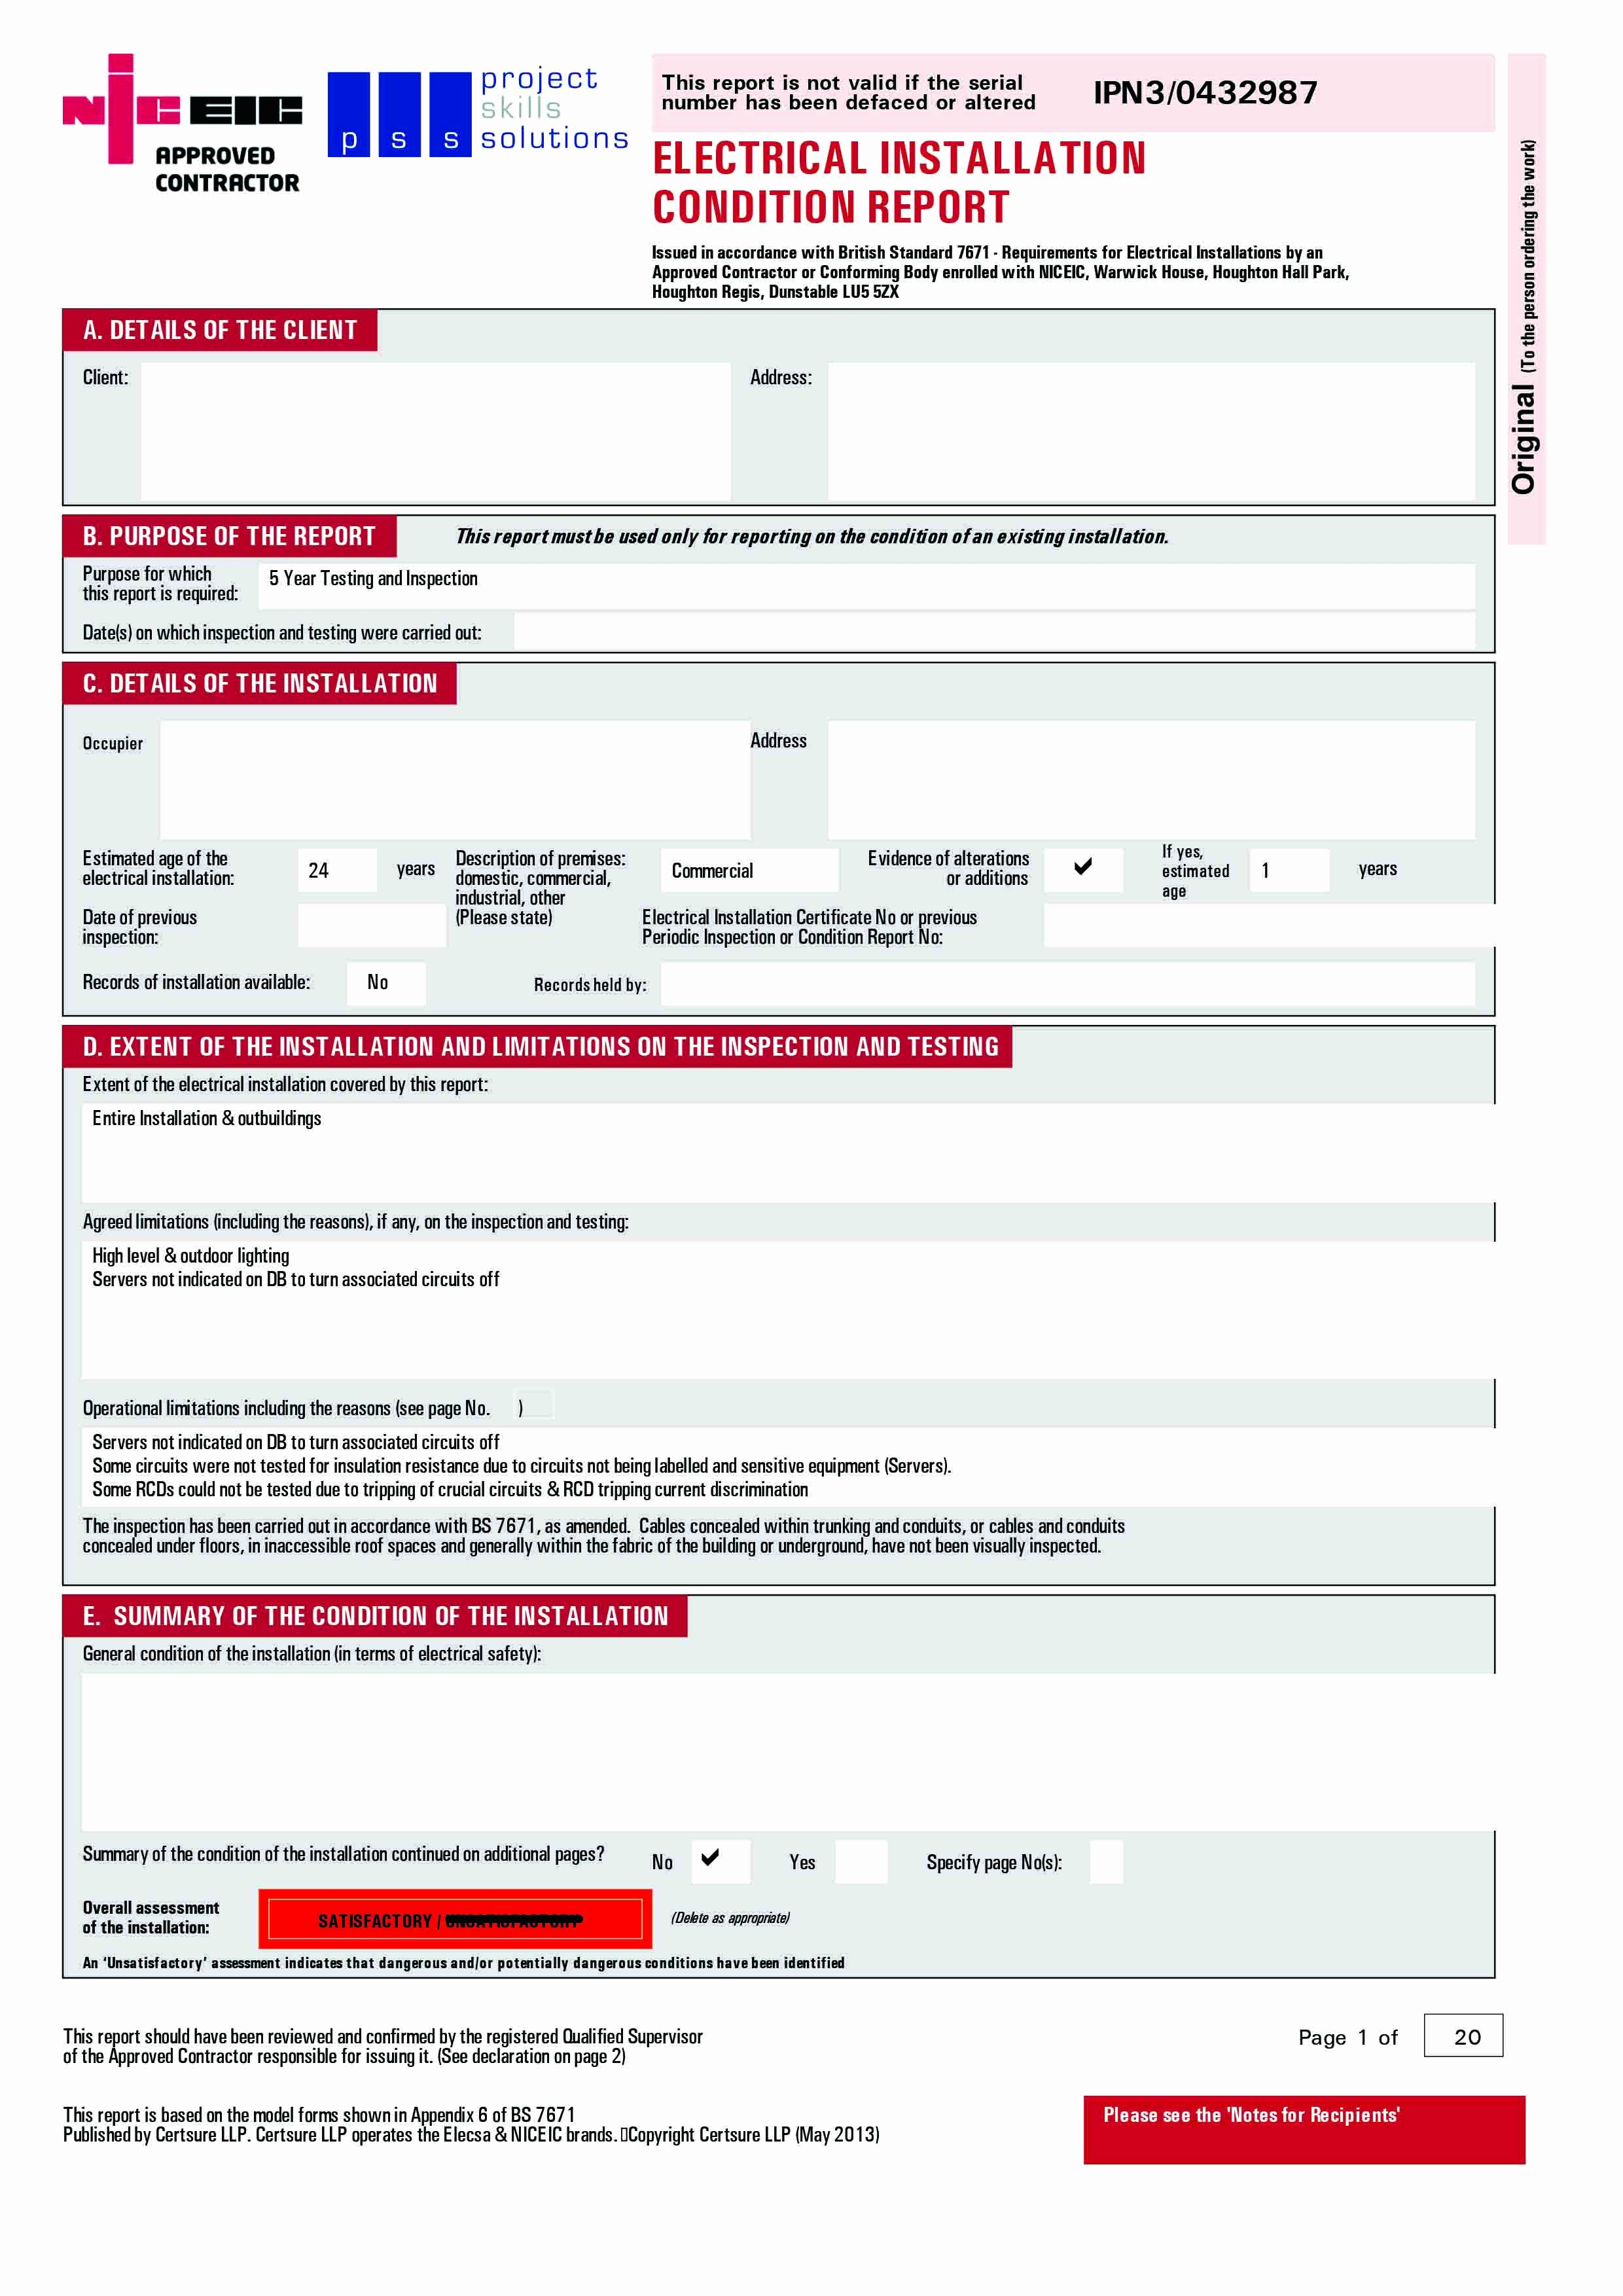 Electrical Inspection Report Template Unique Eicr Electrical Installation Condition Report & Faqs